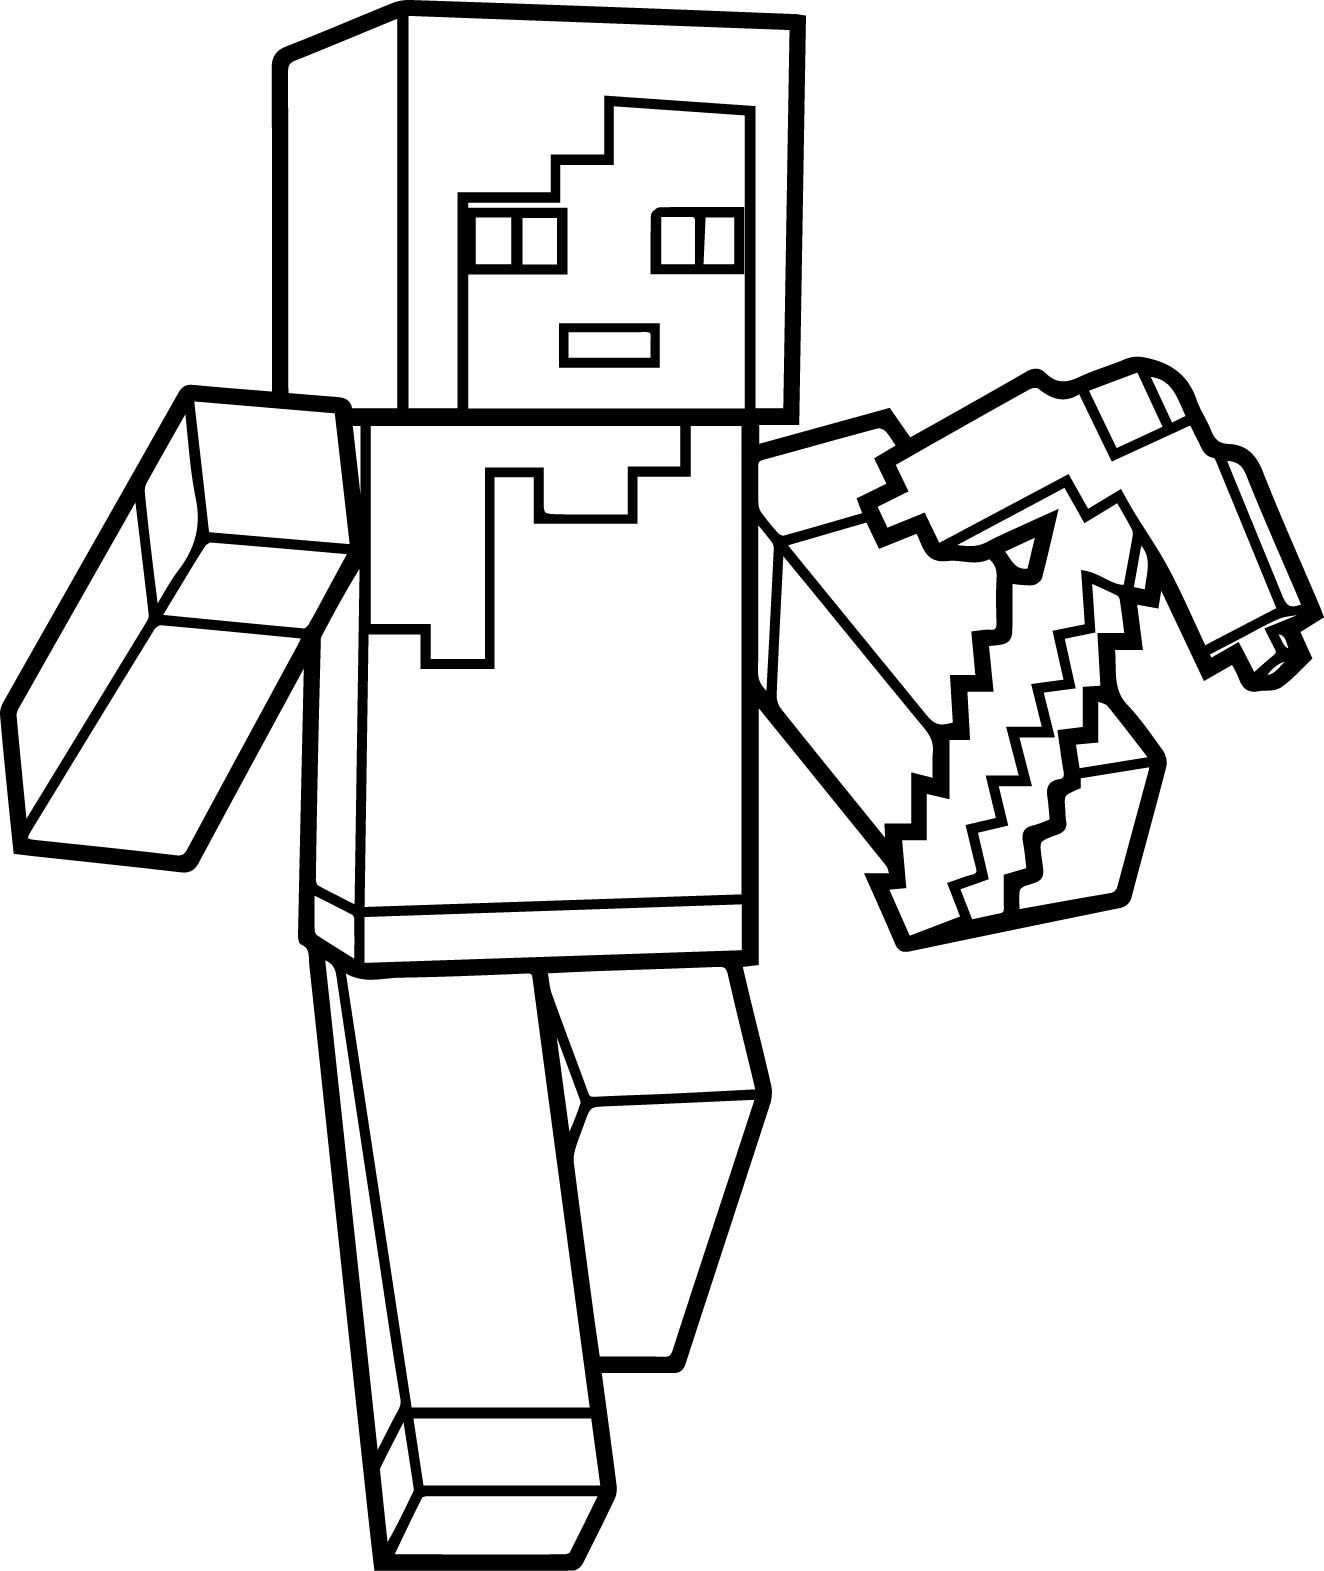 Fun Minecraft Coloring Pages Ideas For Kids I 2020 Med Billeder